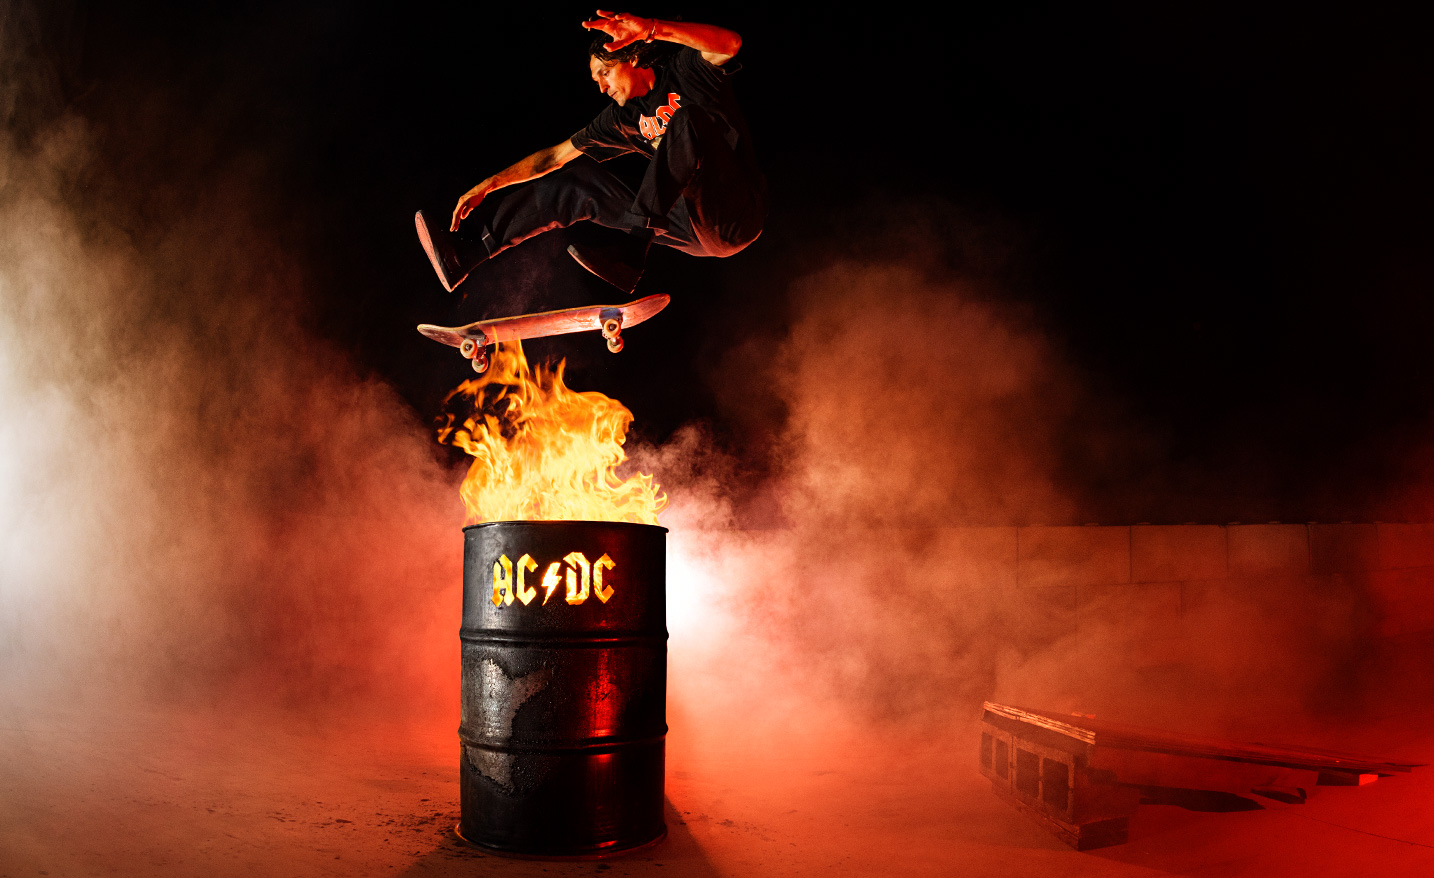 ACDC DC Shoes Back in black